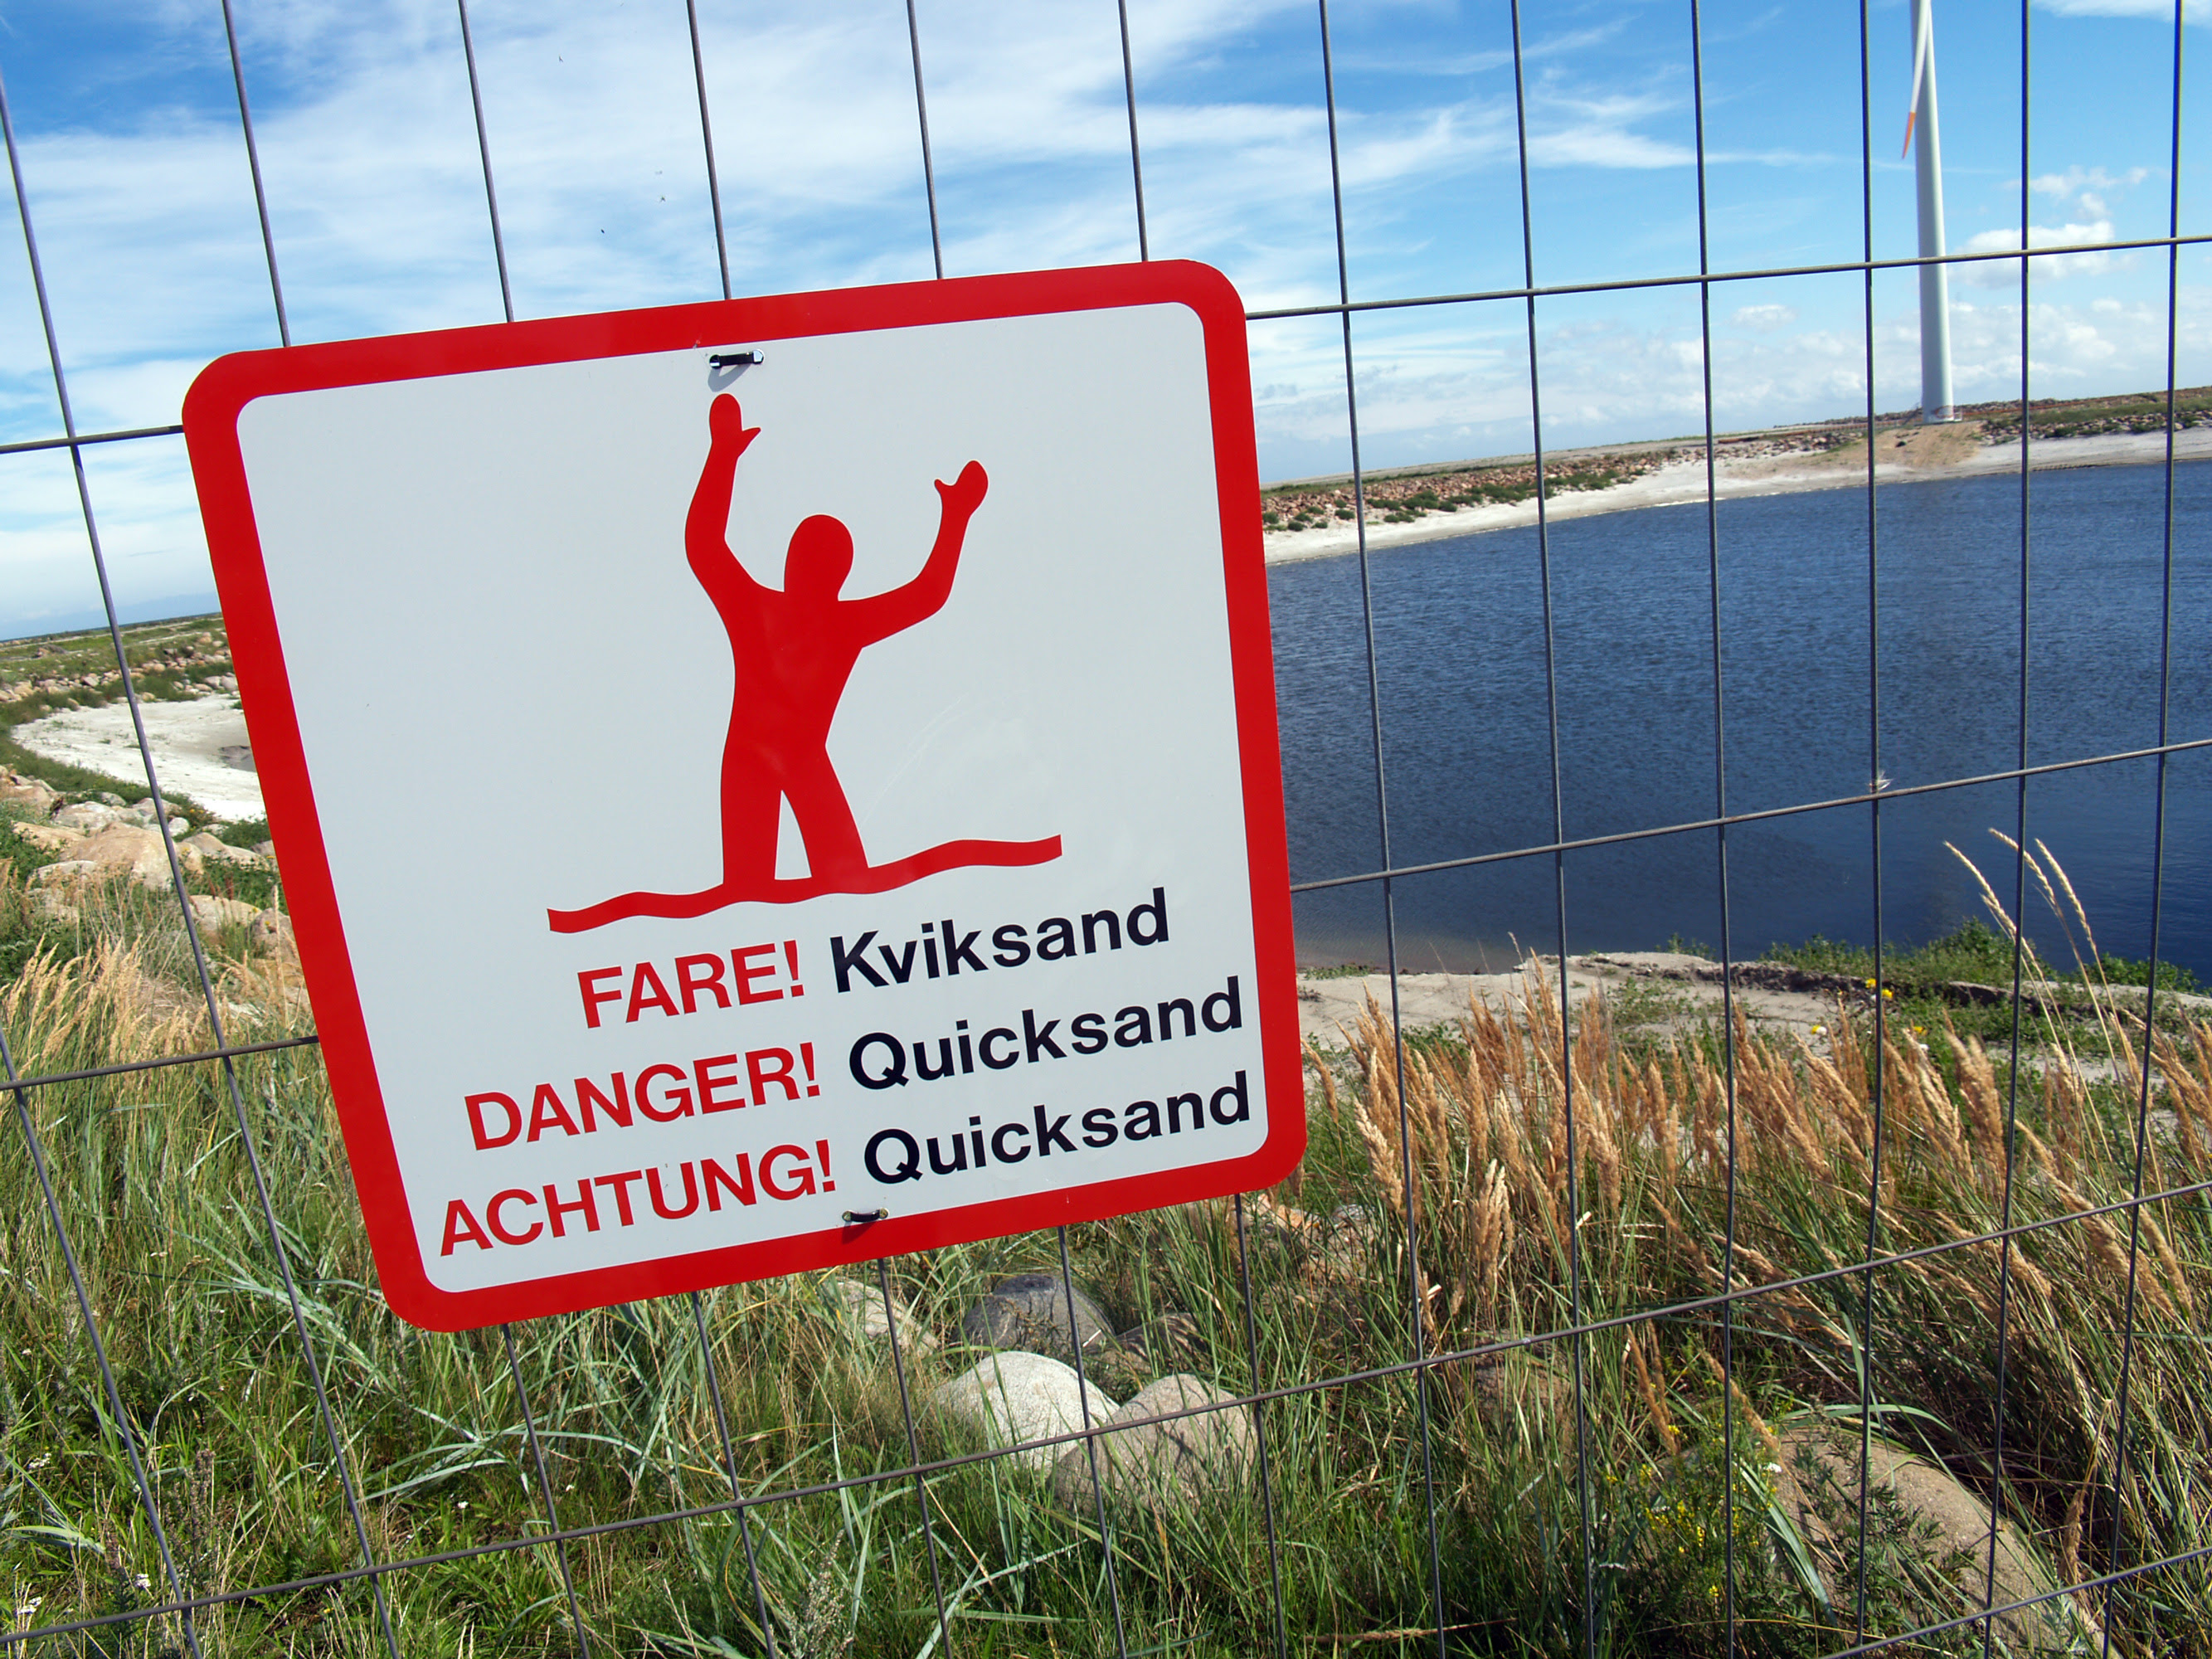 http://upload.wikimedia.org/wikipedia/commons/5/5c/Quicksand-warning-sign-denmark-2010.jpg